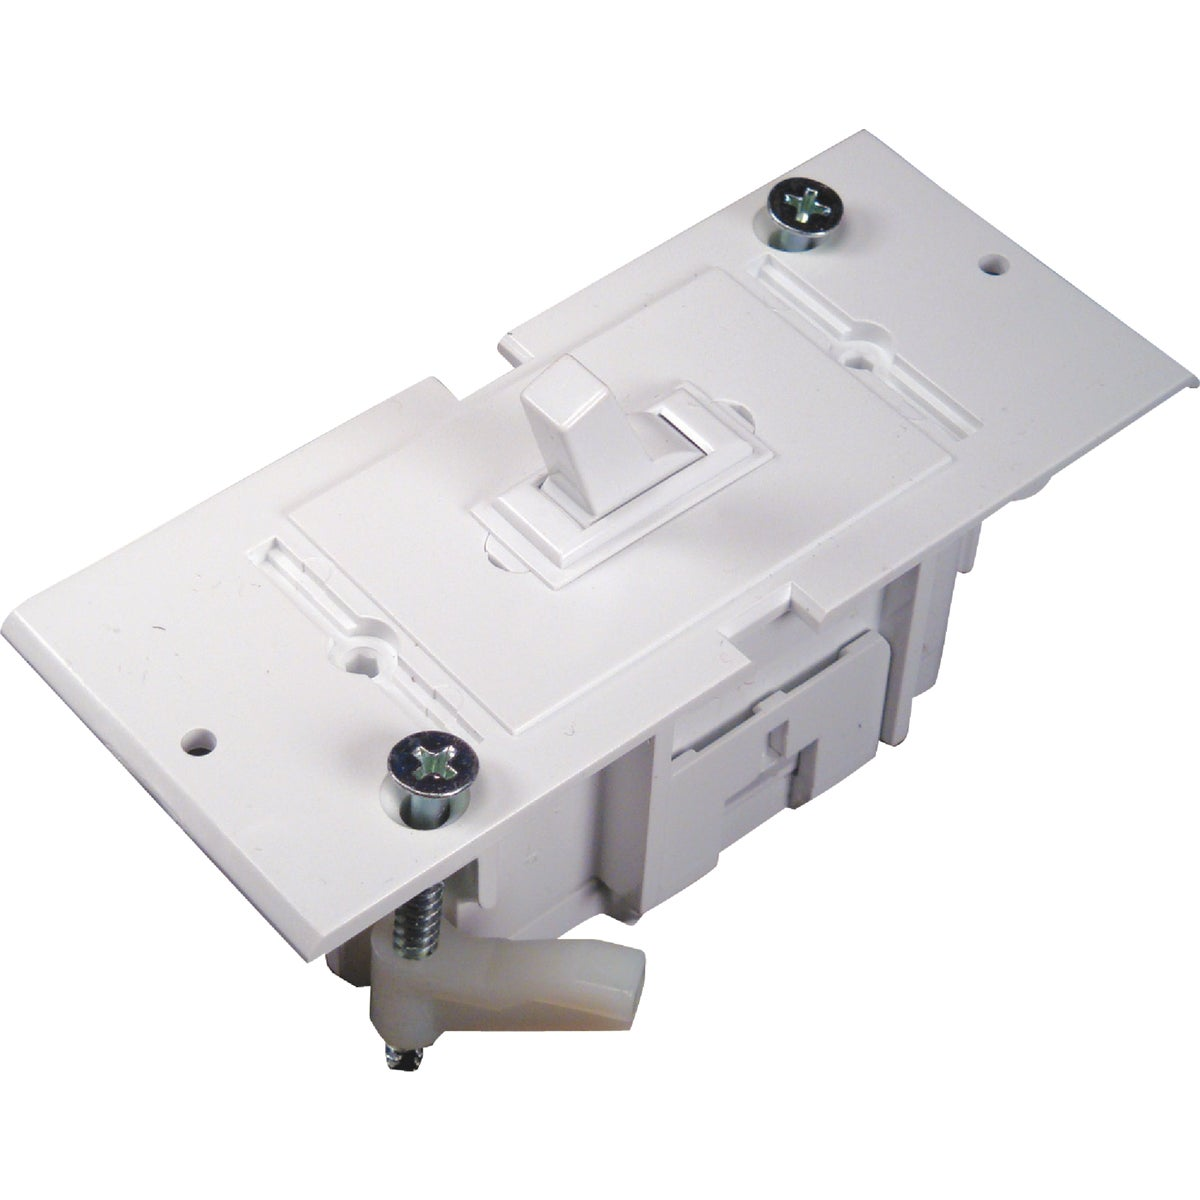 WHT ELECTRICAL SWITCH - E-160C by U S Hardware